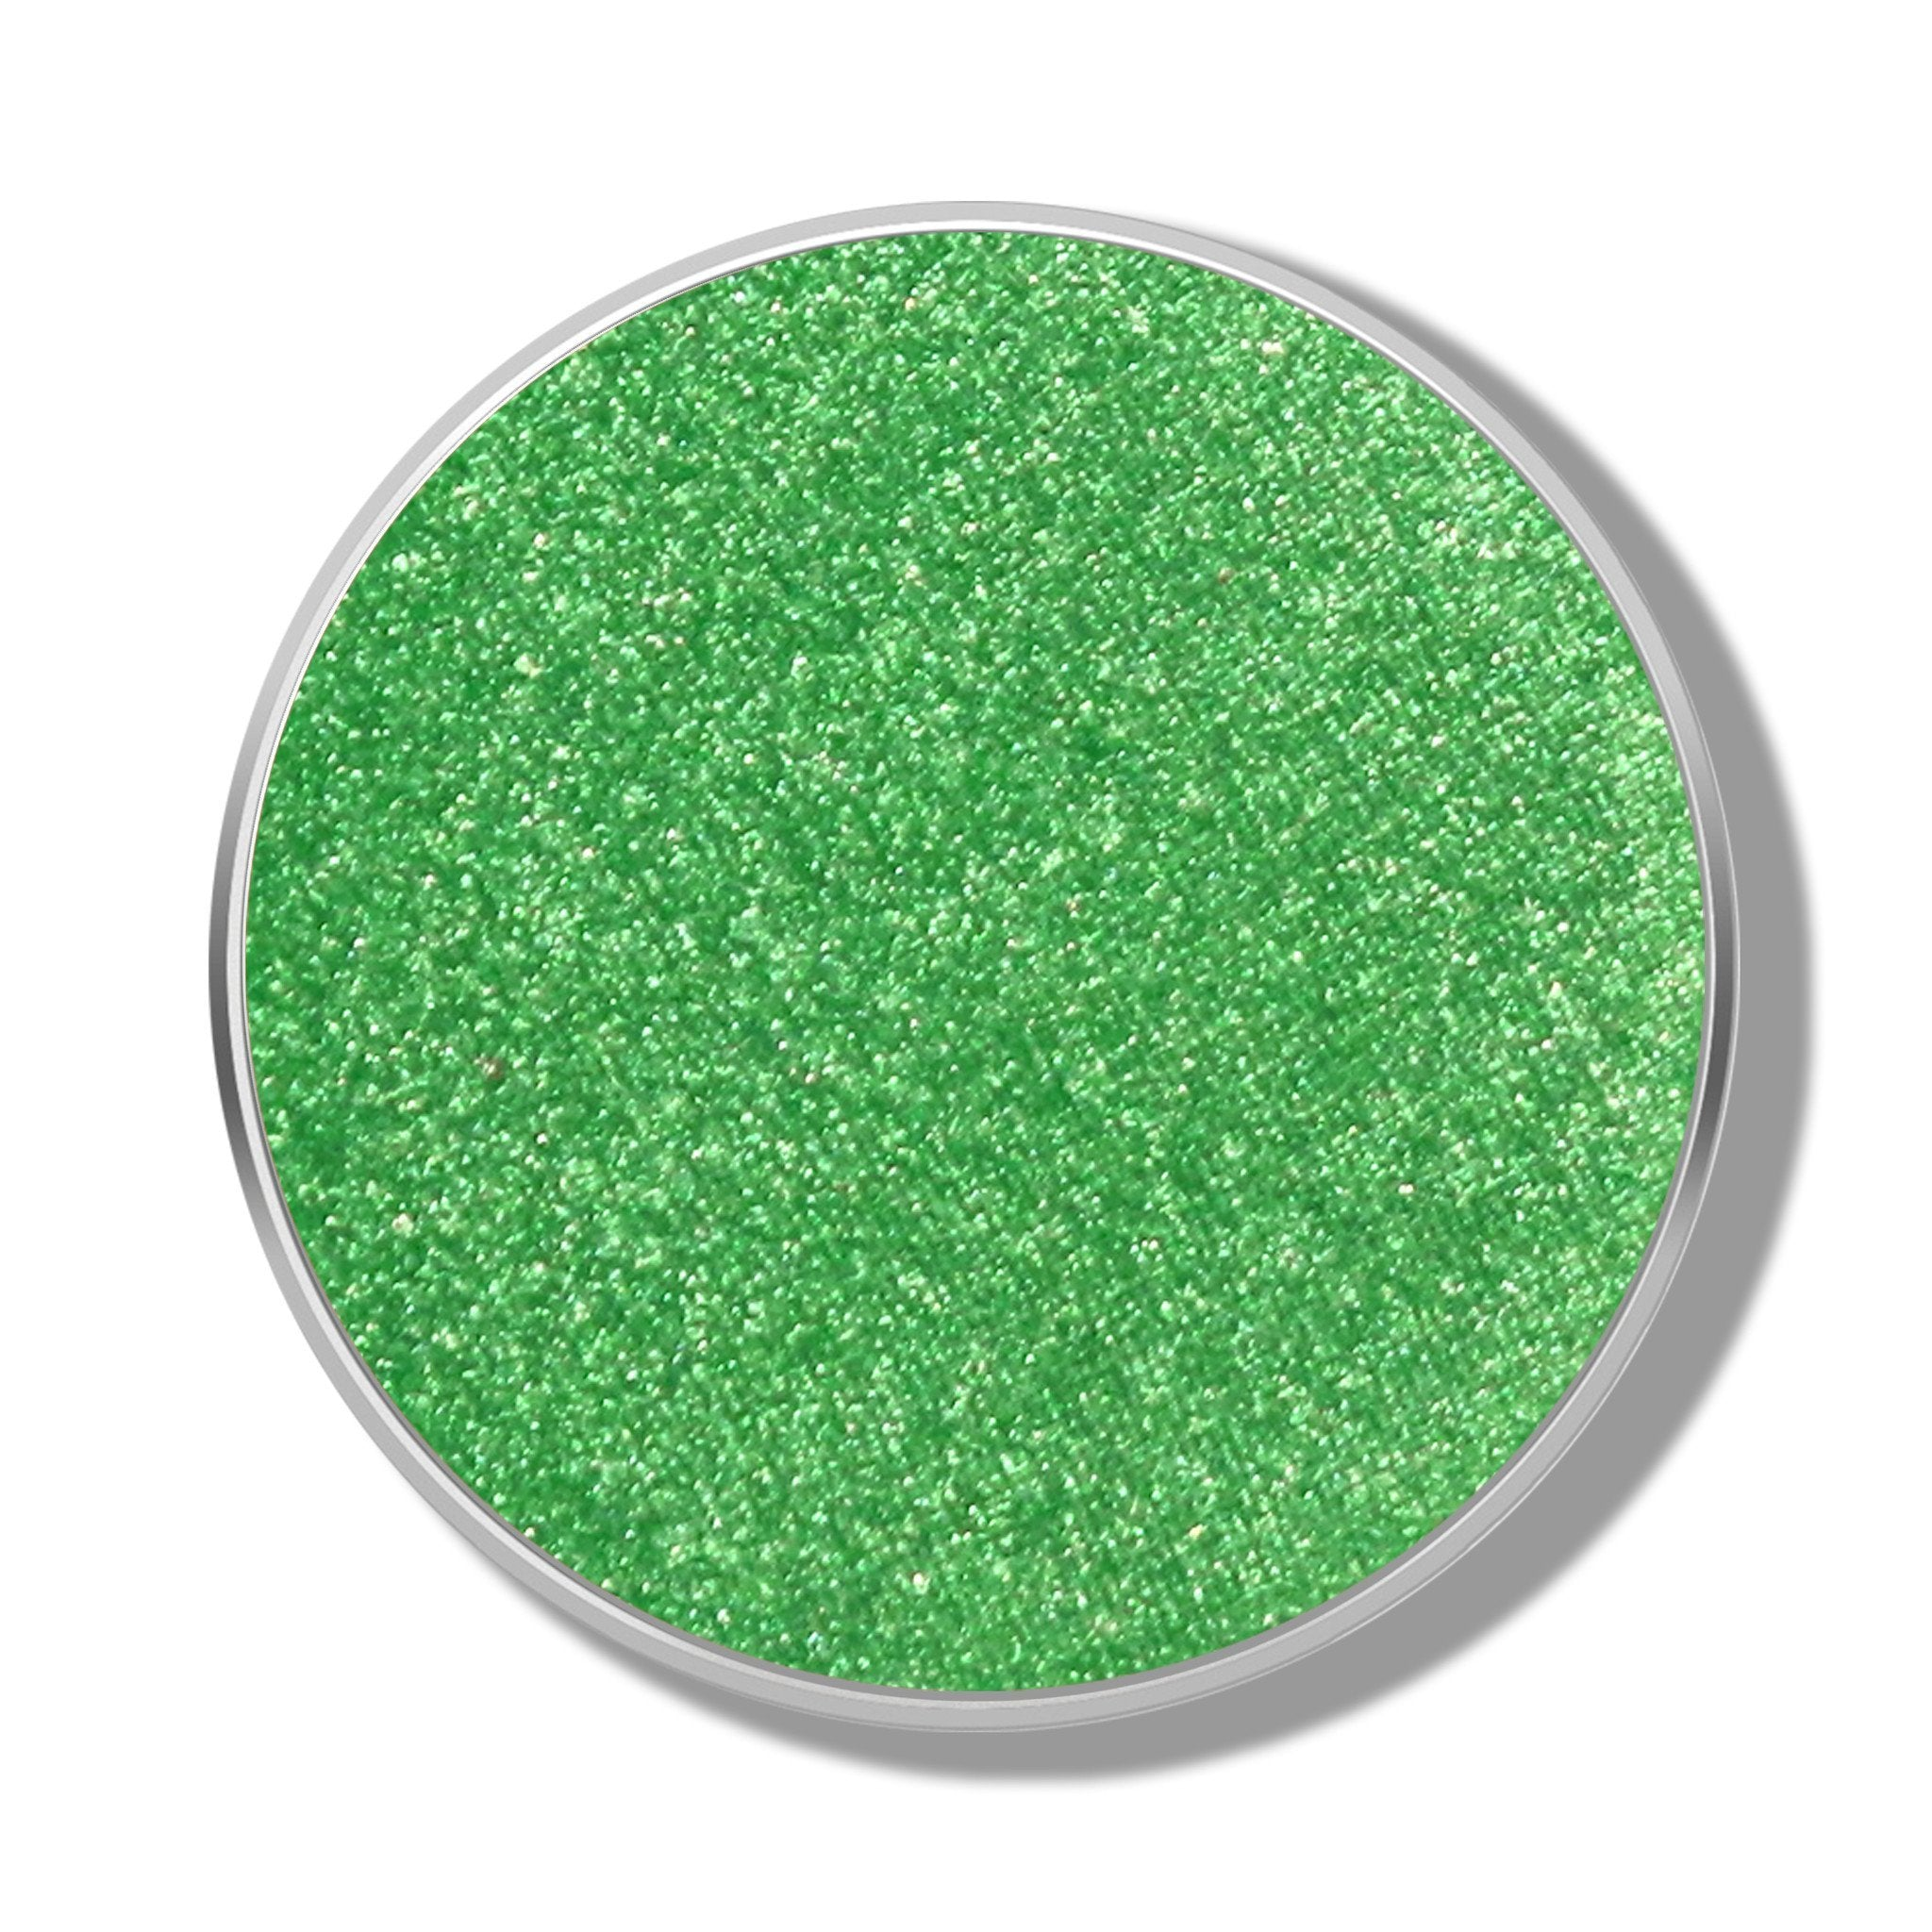 SUVA Beauty Shimmer Shadow - GetDollied USA